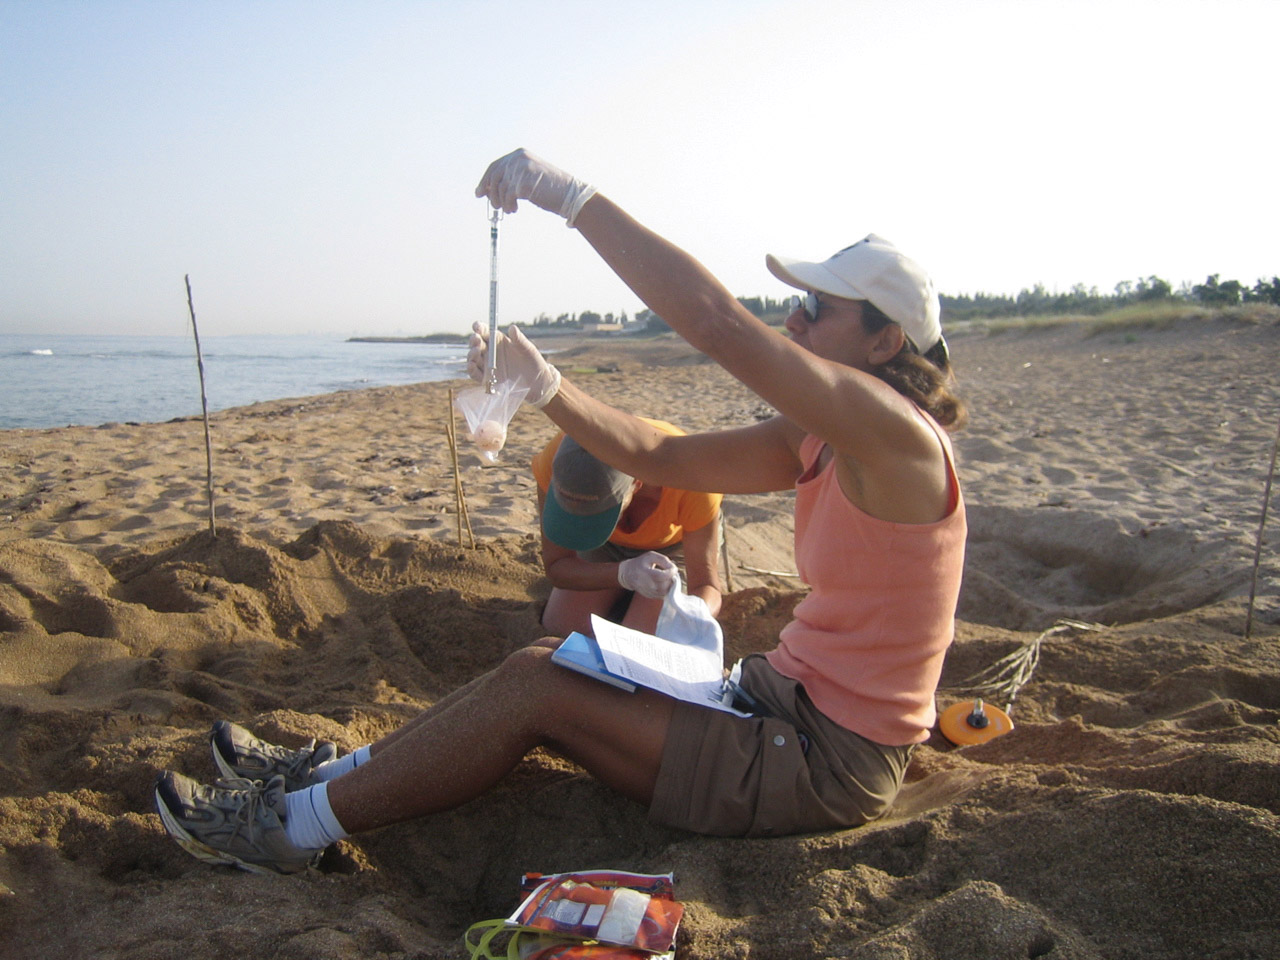 Mona Khalil continued her research on the nesting beach despite the war in her country. PHOTO COURTESY OF MONA KHALIL.